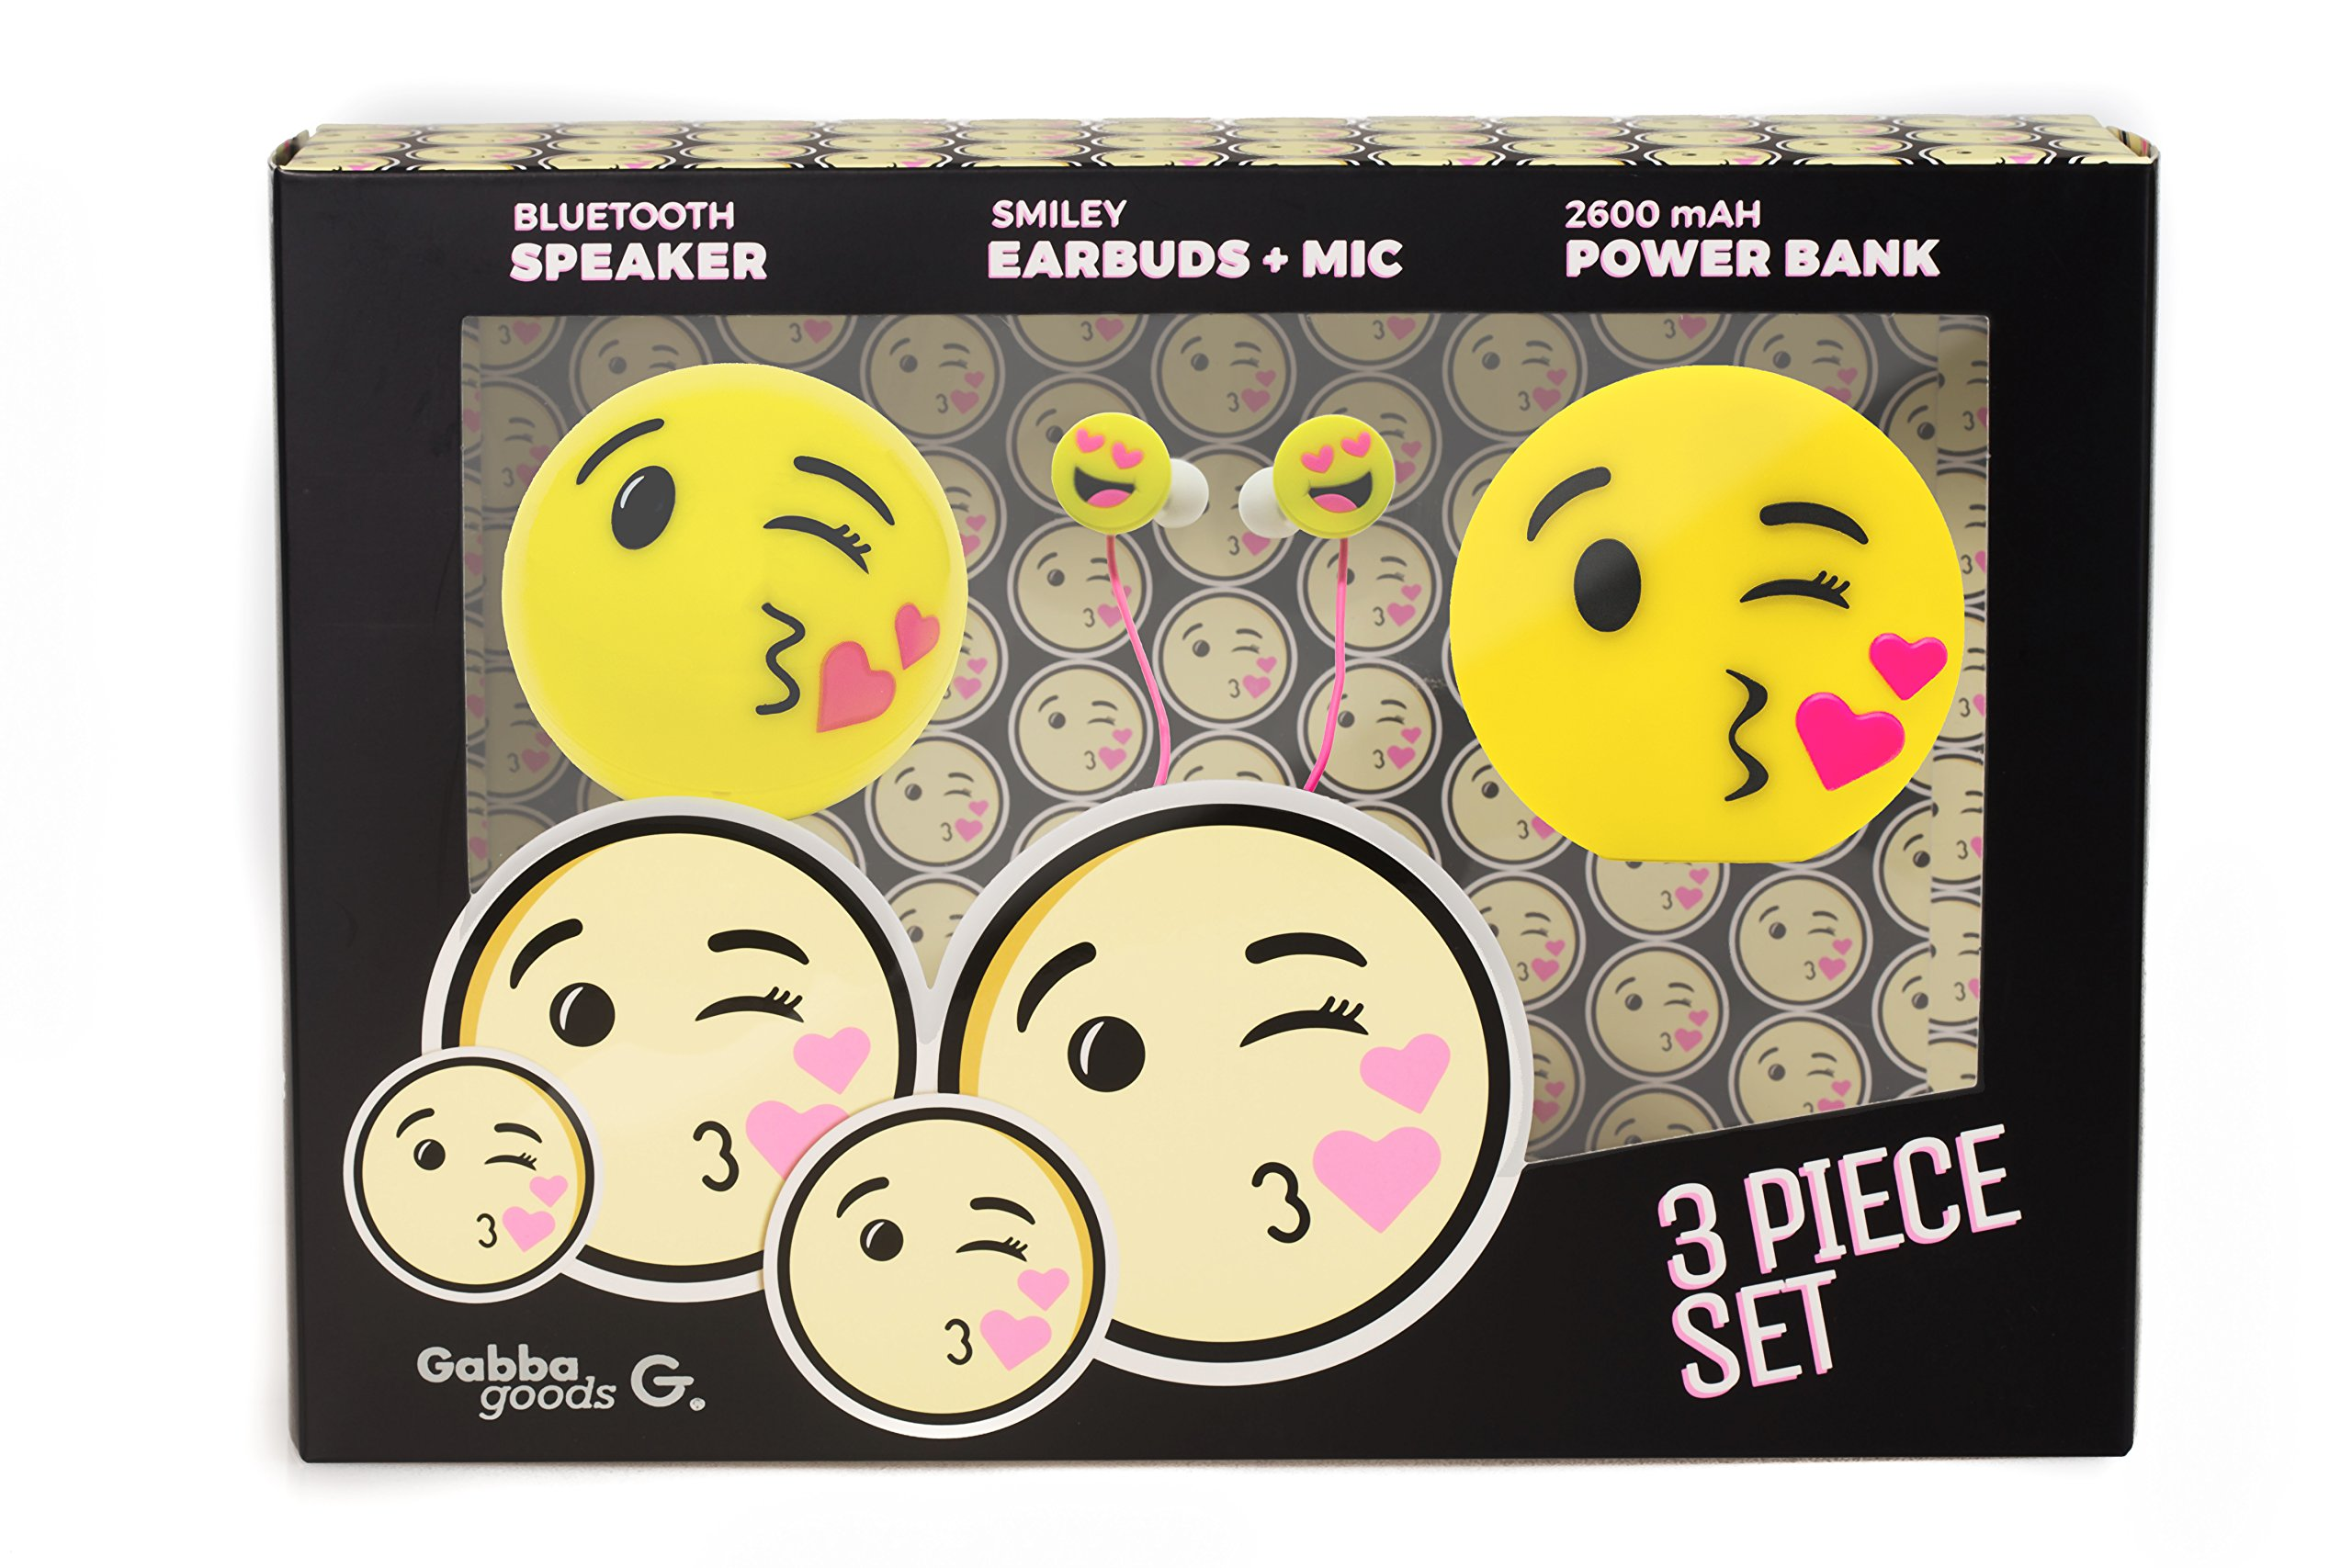 GabbaGoods 3 Piece Kissy Face Emoticon Kids Electronics Combo Gift Set- Gabba Goods Bluetooth Wireless Audio Sound Speaker, In-Ear Emoji EarBuds with Mic, and a 2600 mAh Portable Charging Power Bank